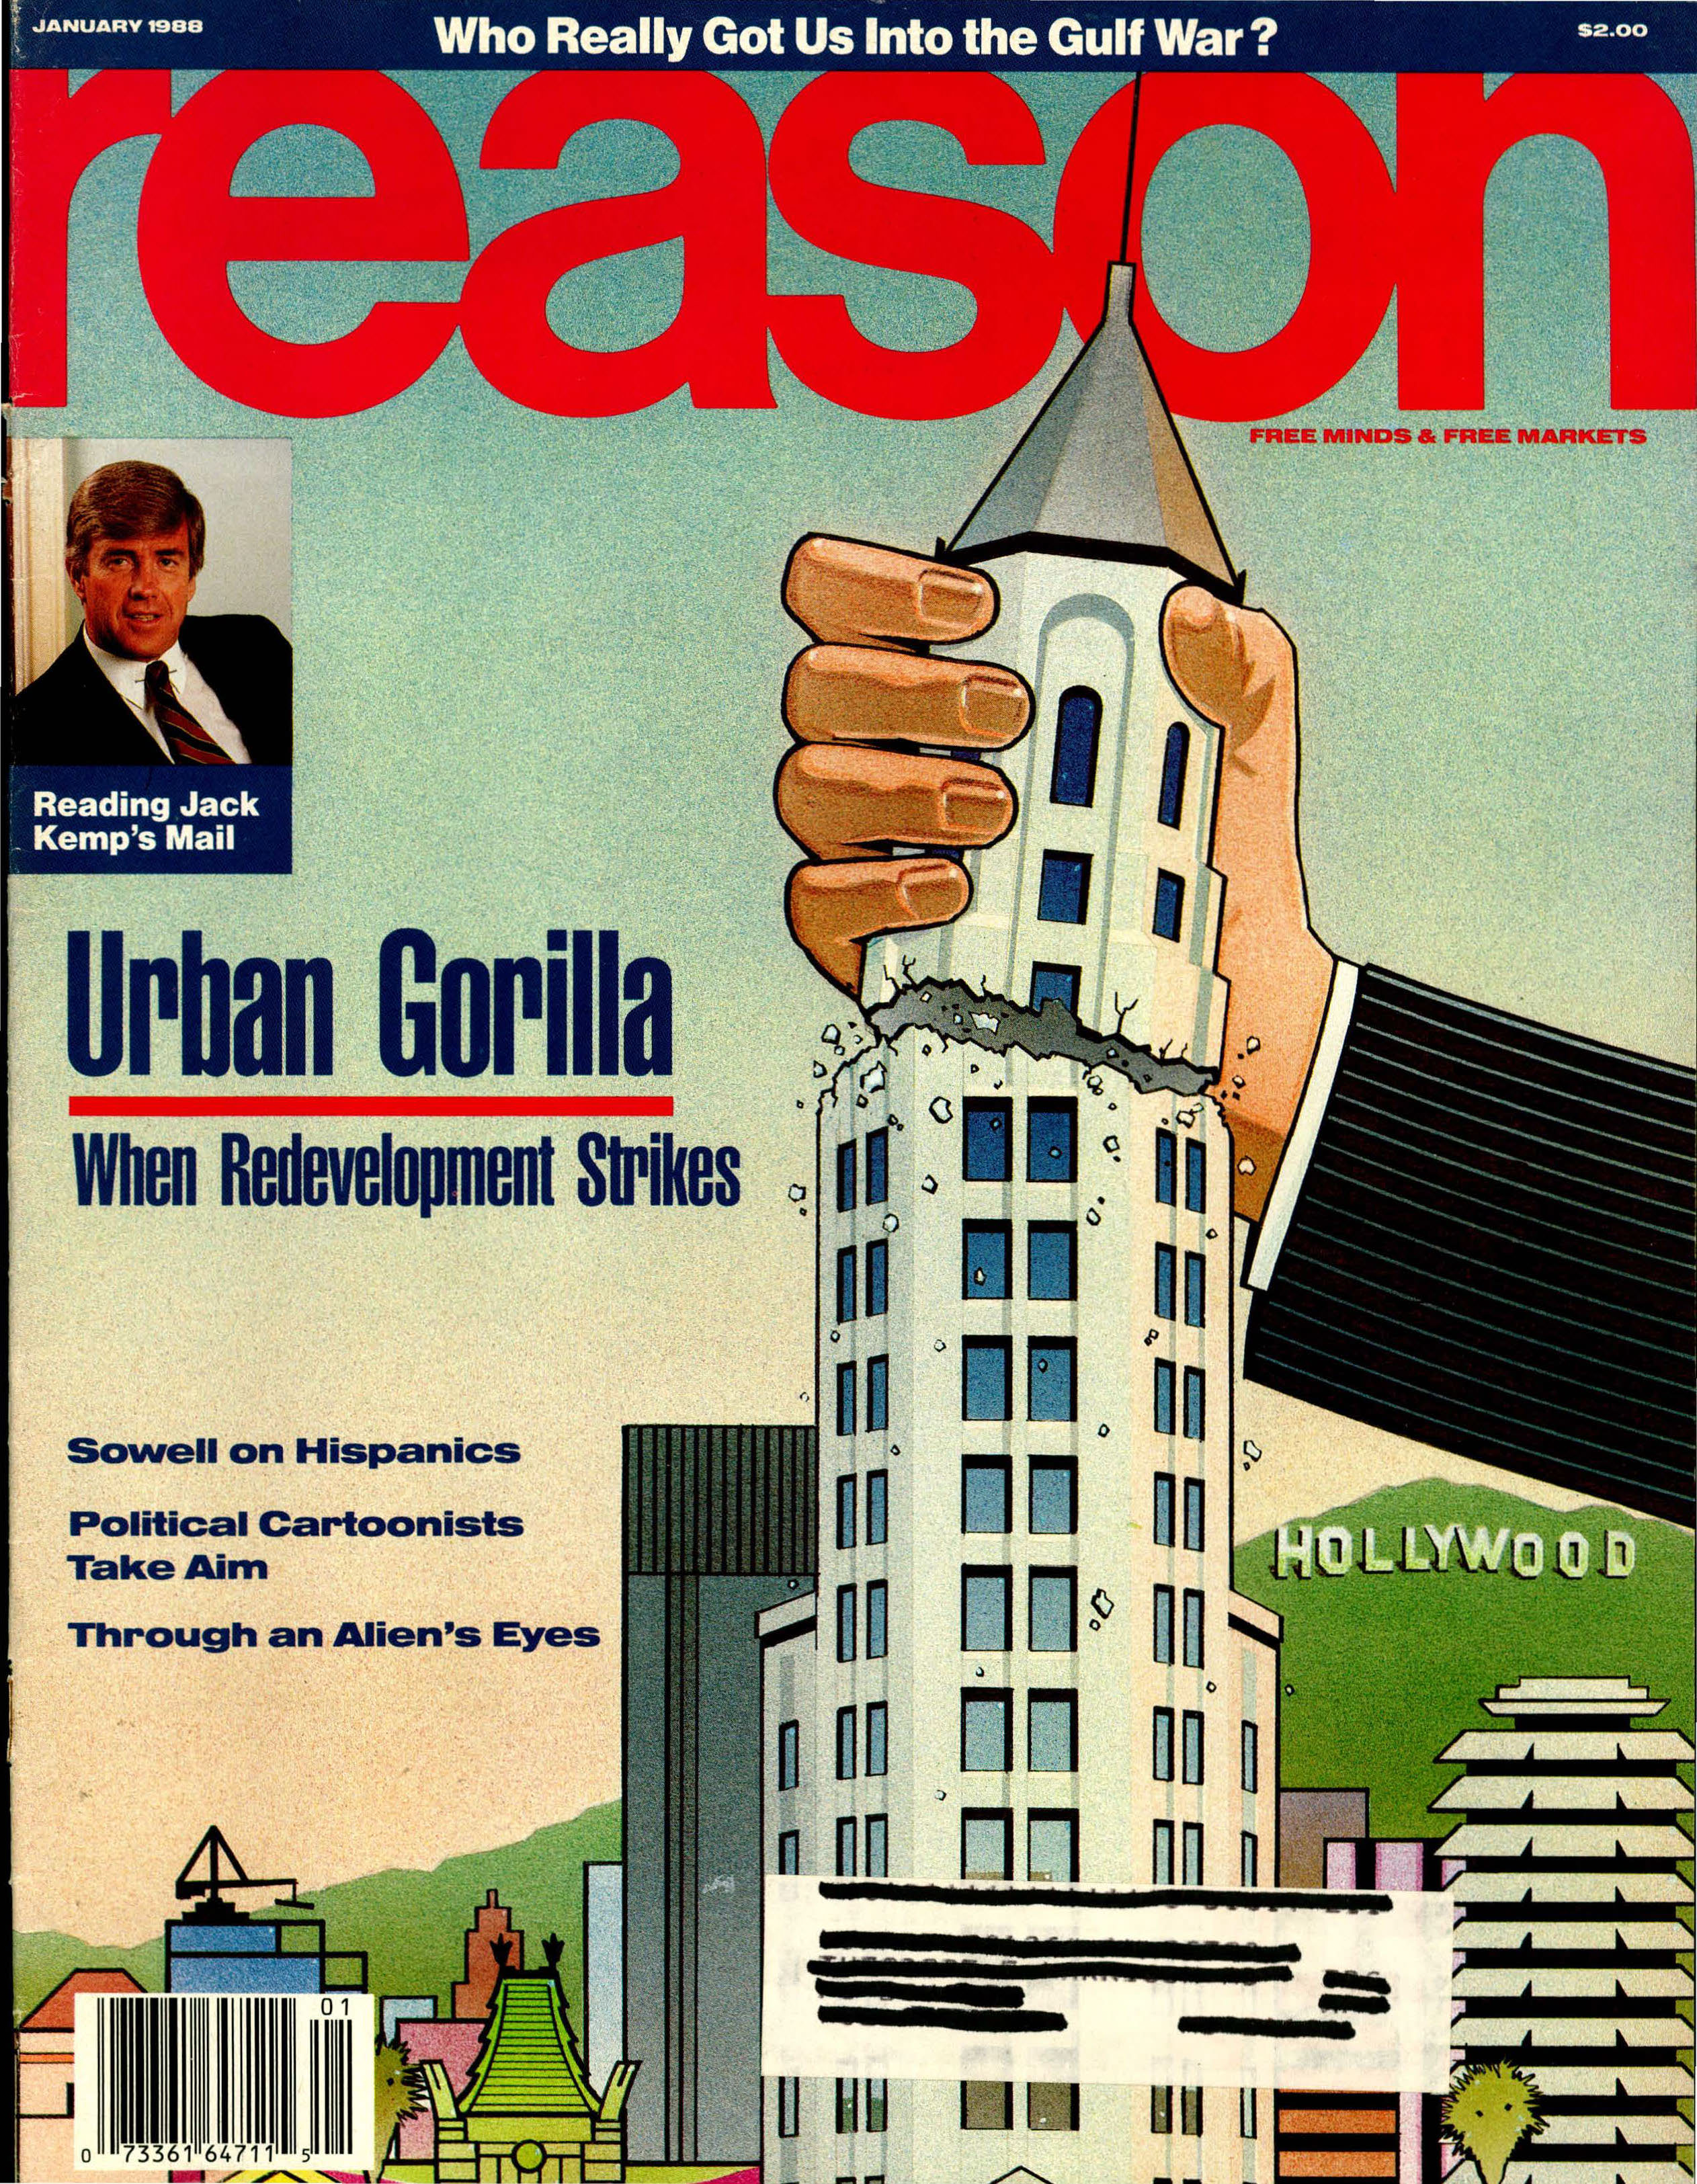 Reason Magazine, January 1988 cover image